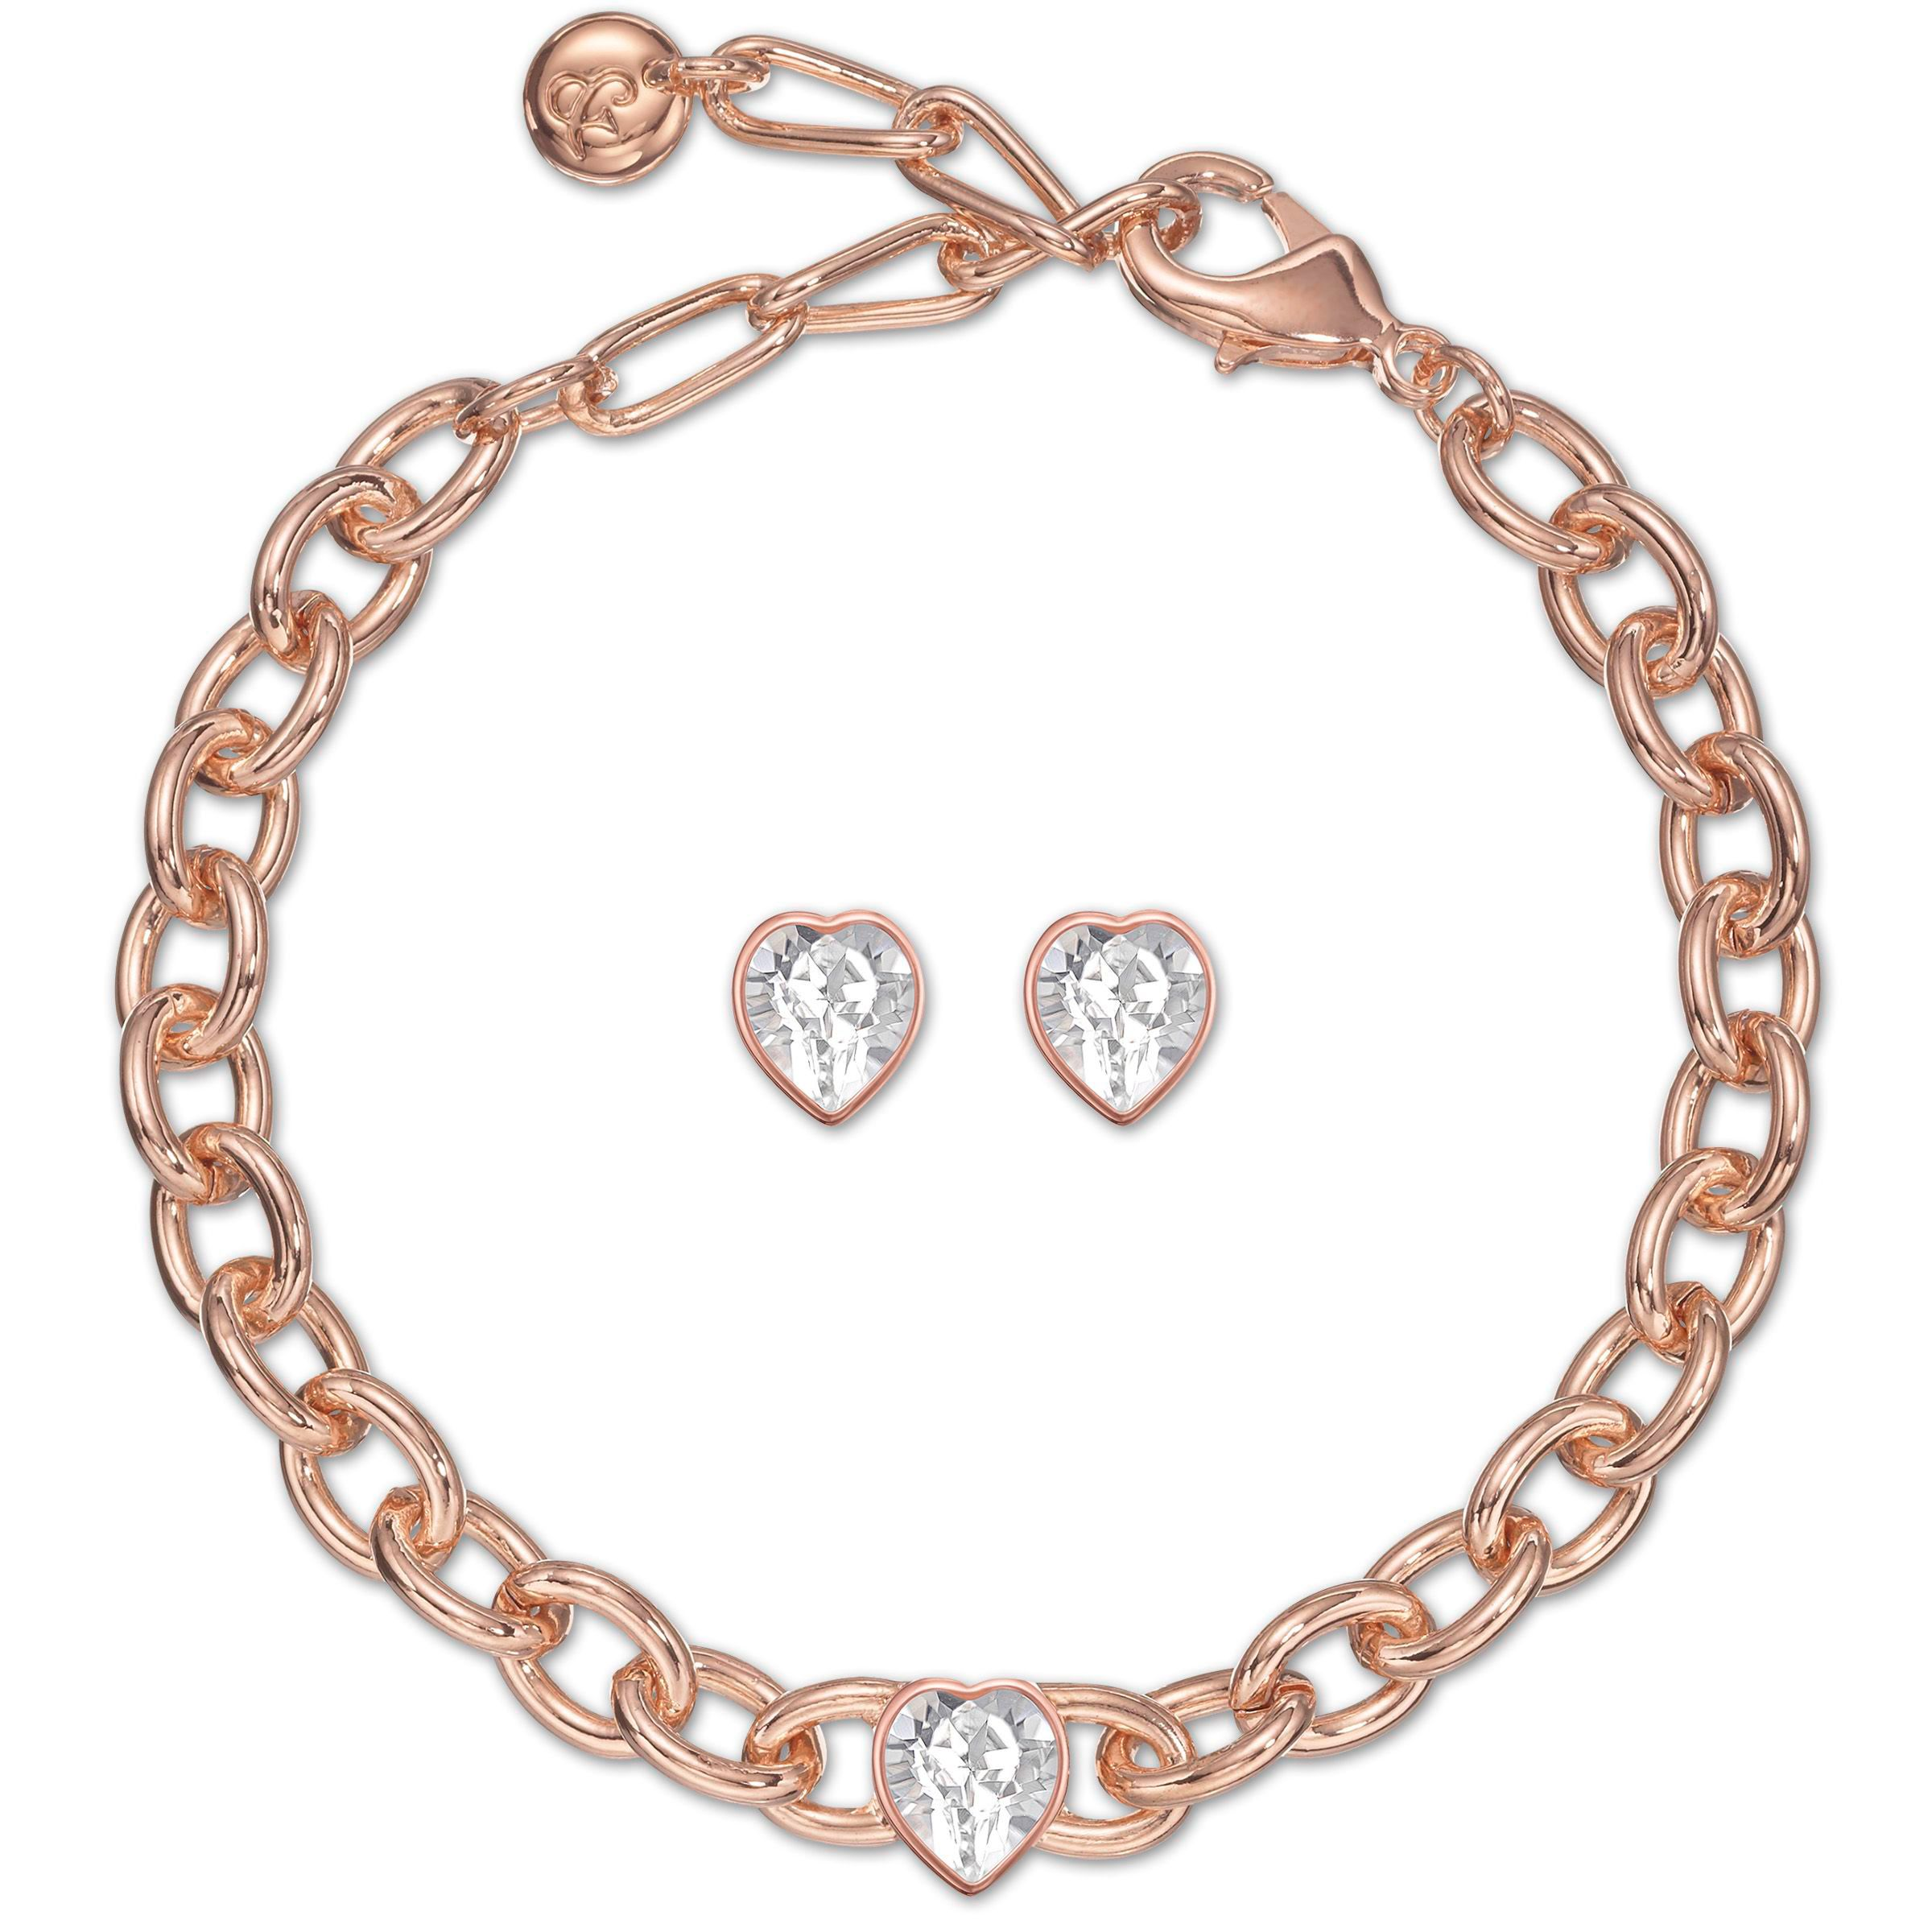 Crystal heart bracelet & earring set